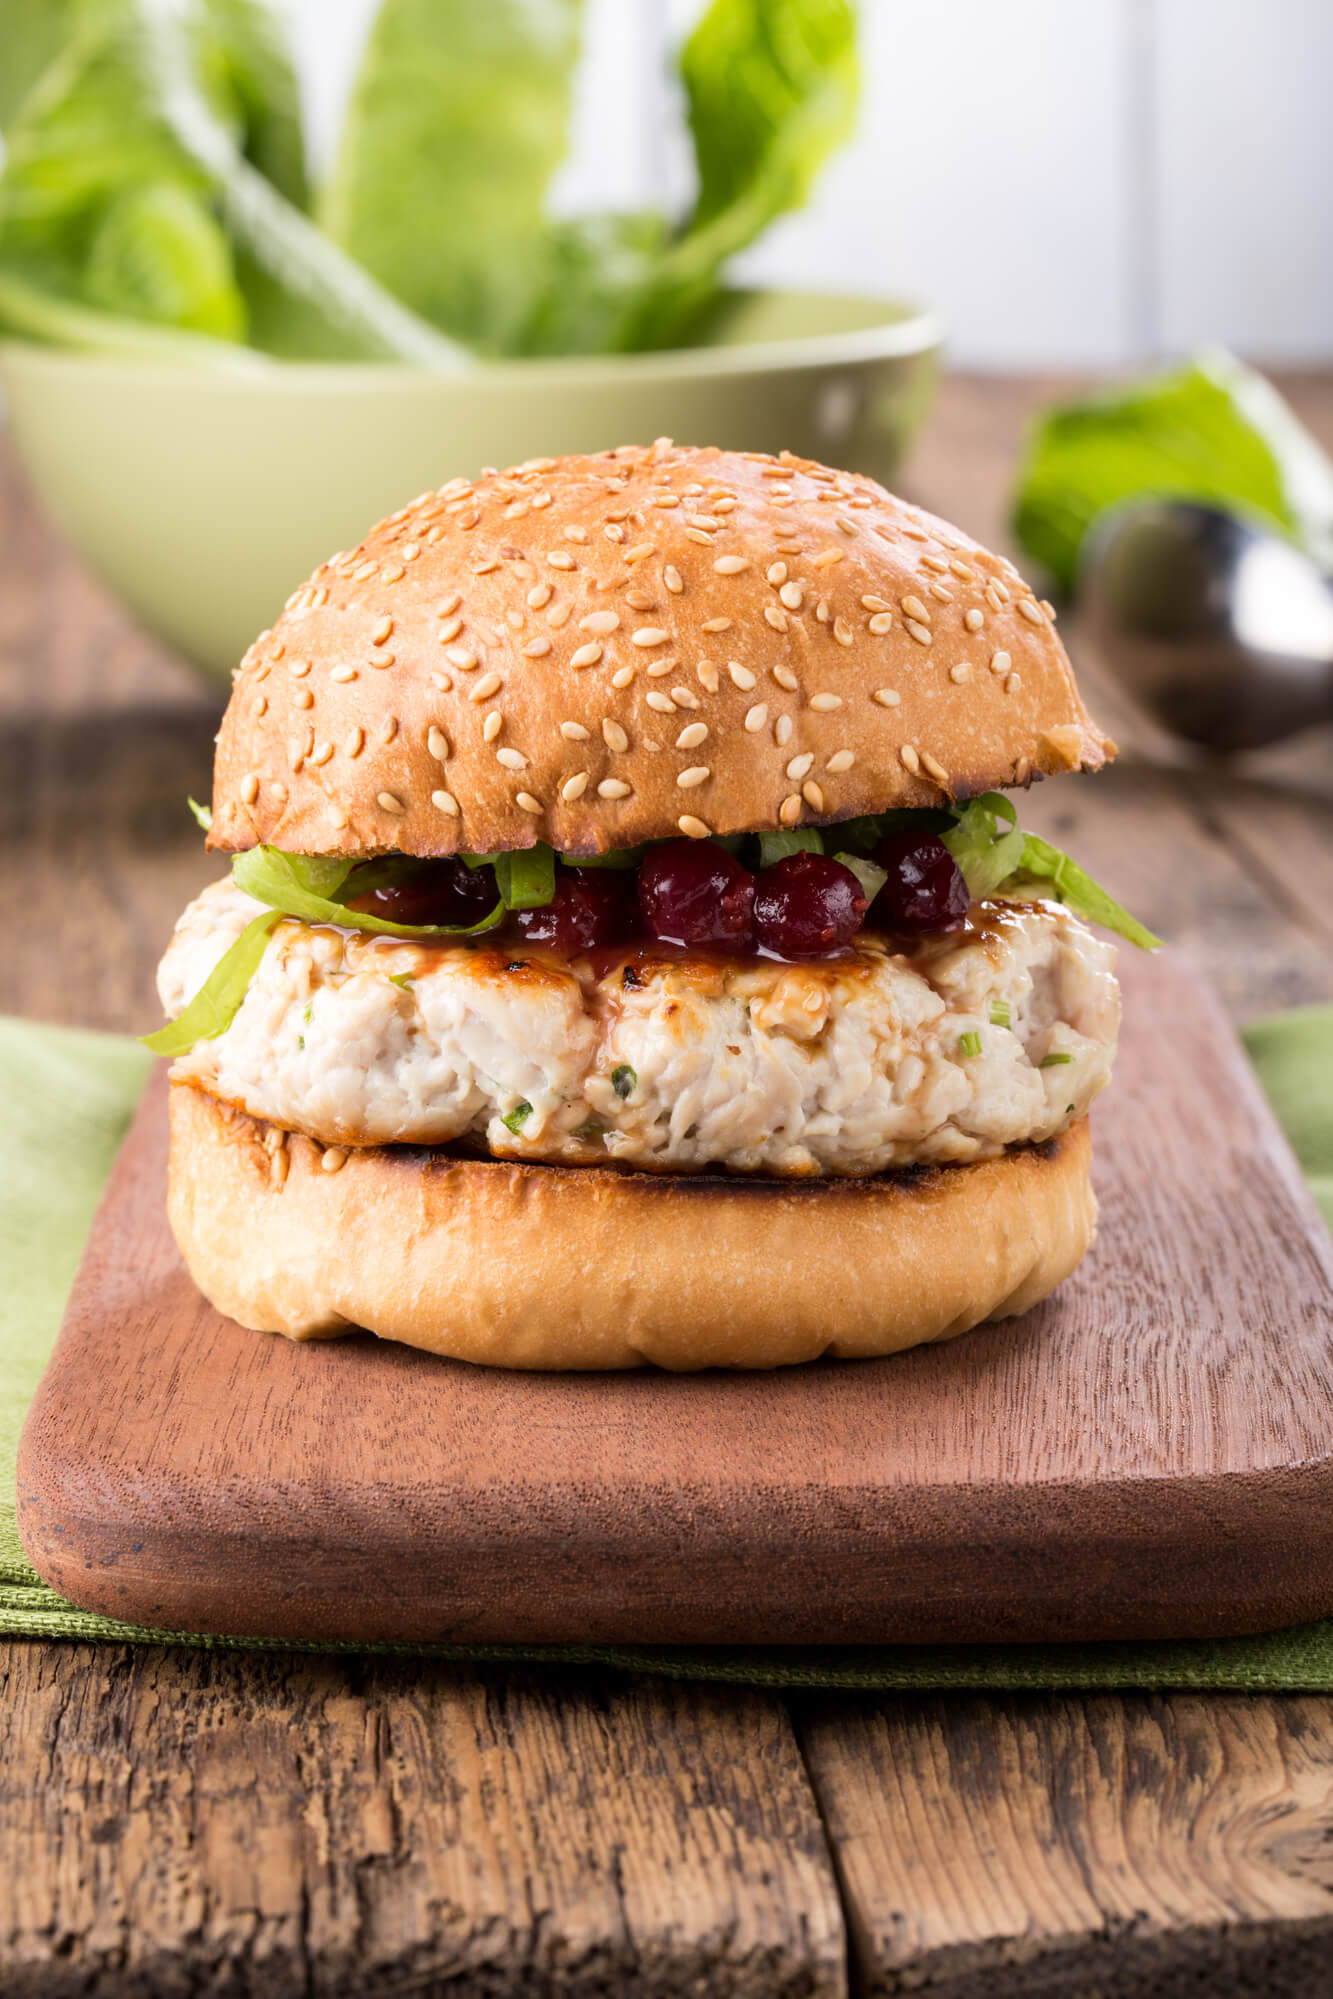 Chicken and zucchini burgers with cranberry sauce on wheat bread.